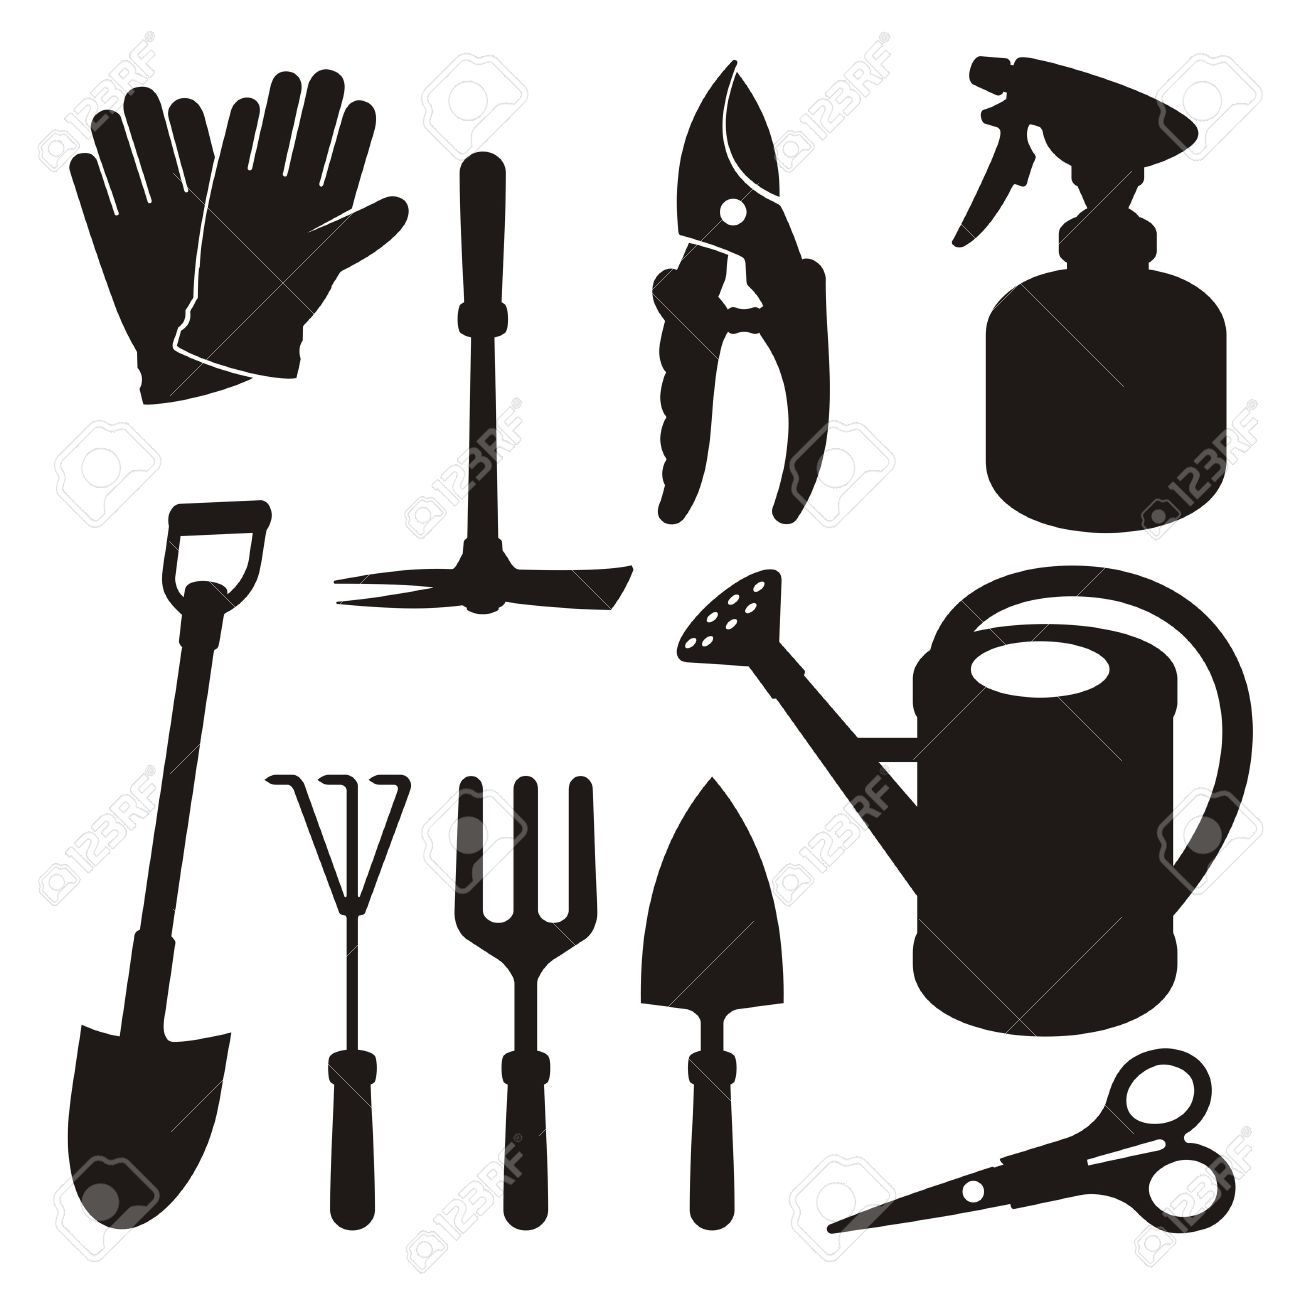 Gardening Tools Stock Illustrations Cliparts And Royalty Free